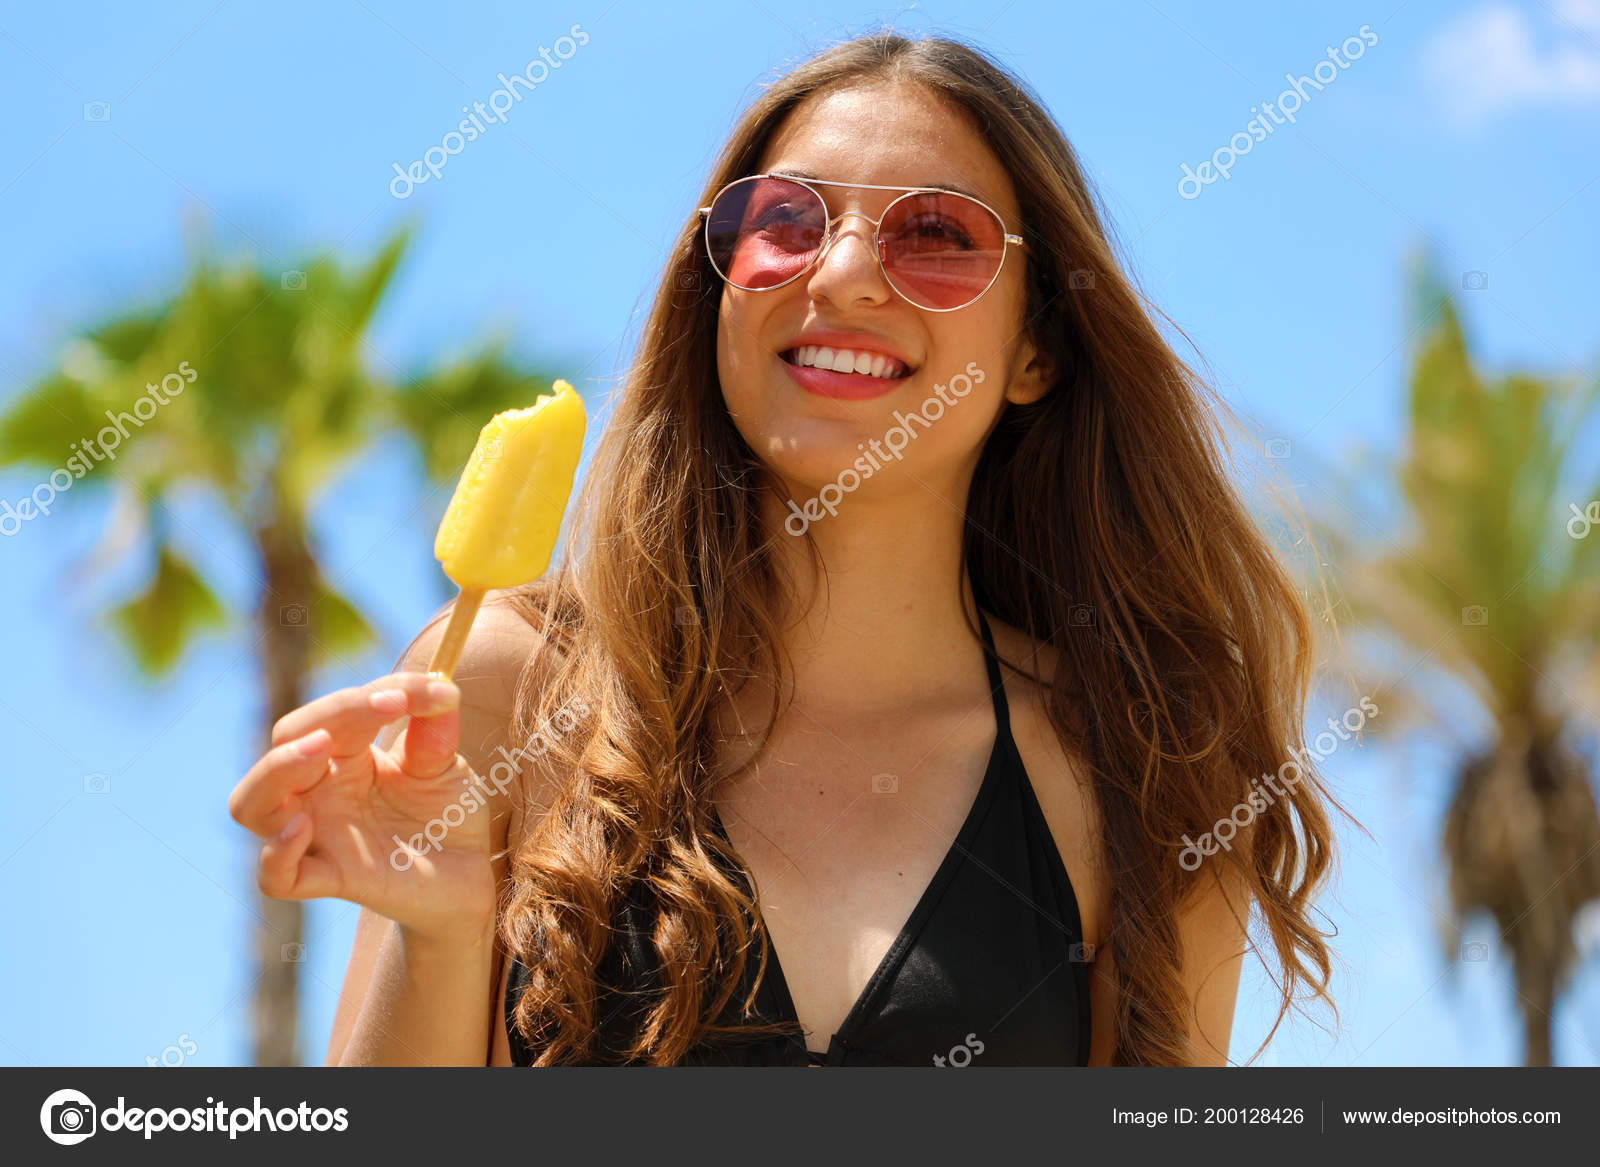 702443894f3 Happy beautiful girl with sunglasses on the beach eating ice lolly with  palm trees on the backgroud. Summer holidays concept. — Photo by sergio pulp